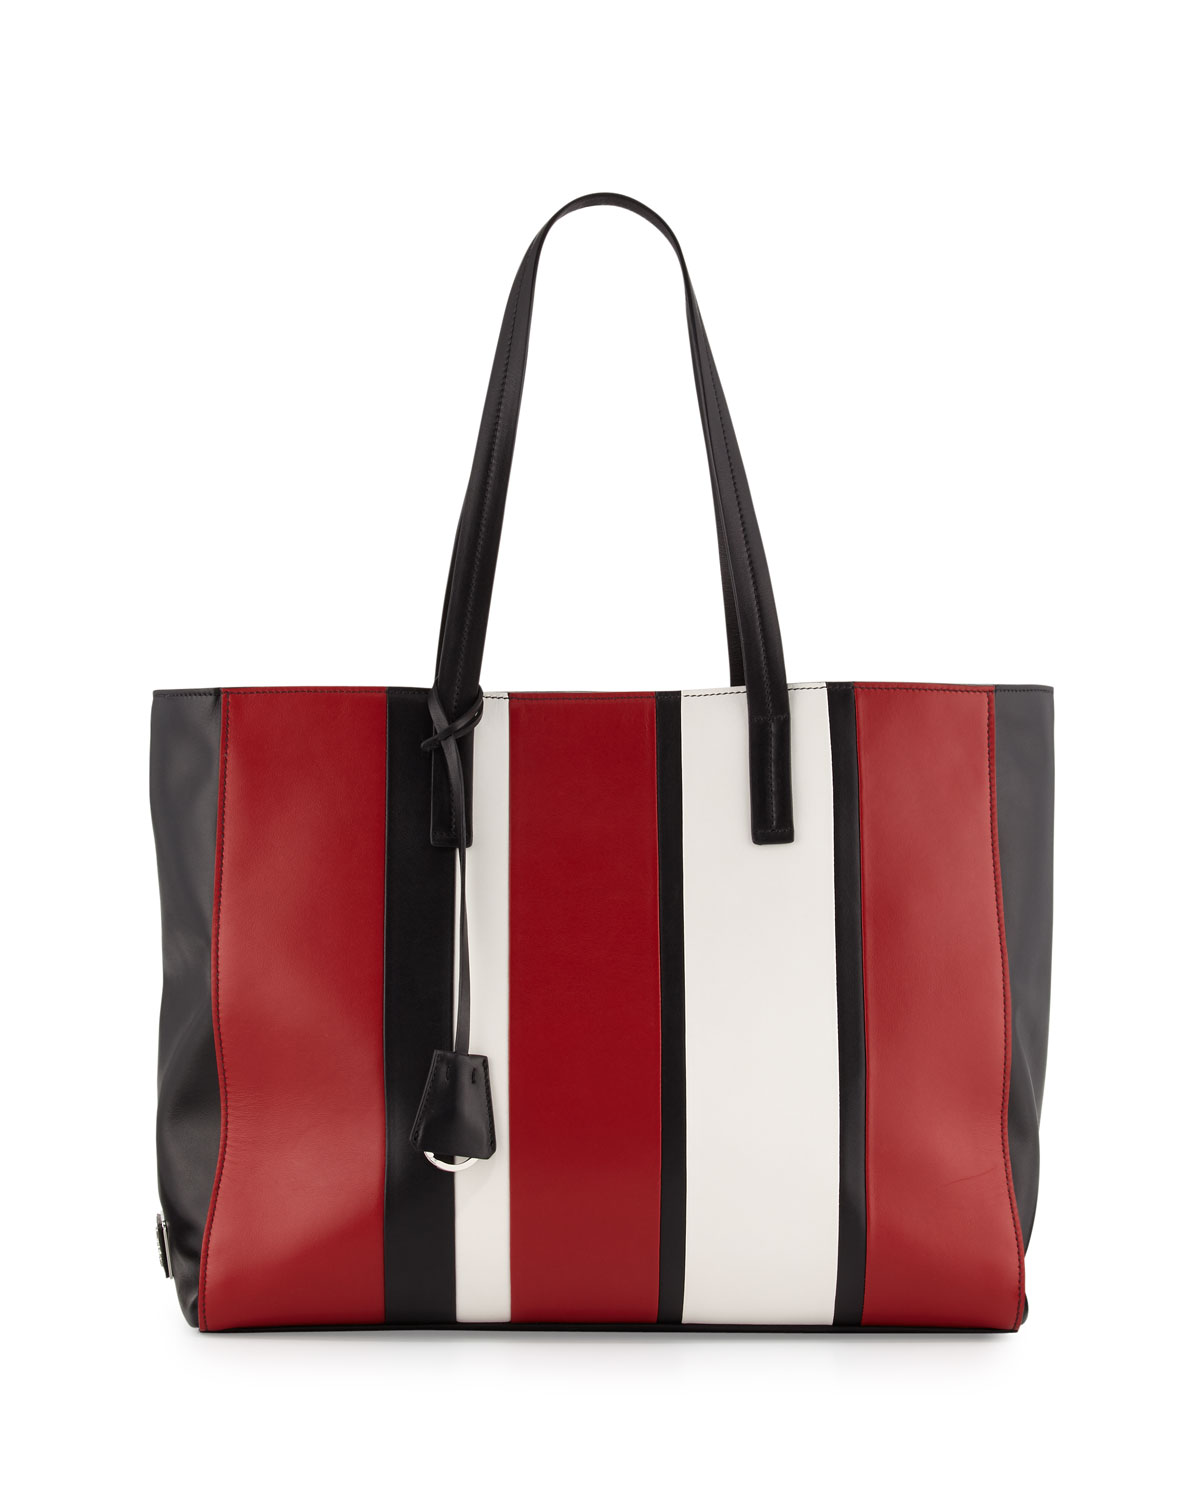 d83fa5f5b9ec Prada Leather Baiadera Striped Tote Bag